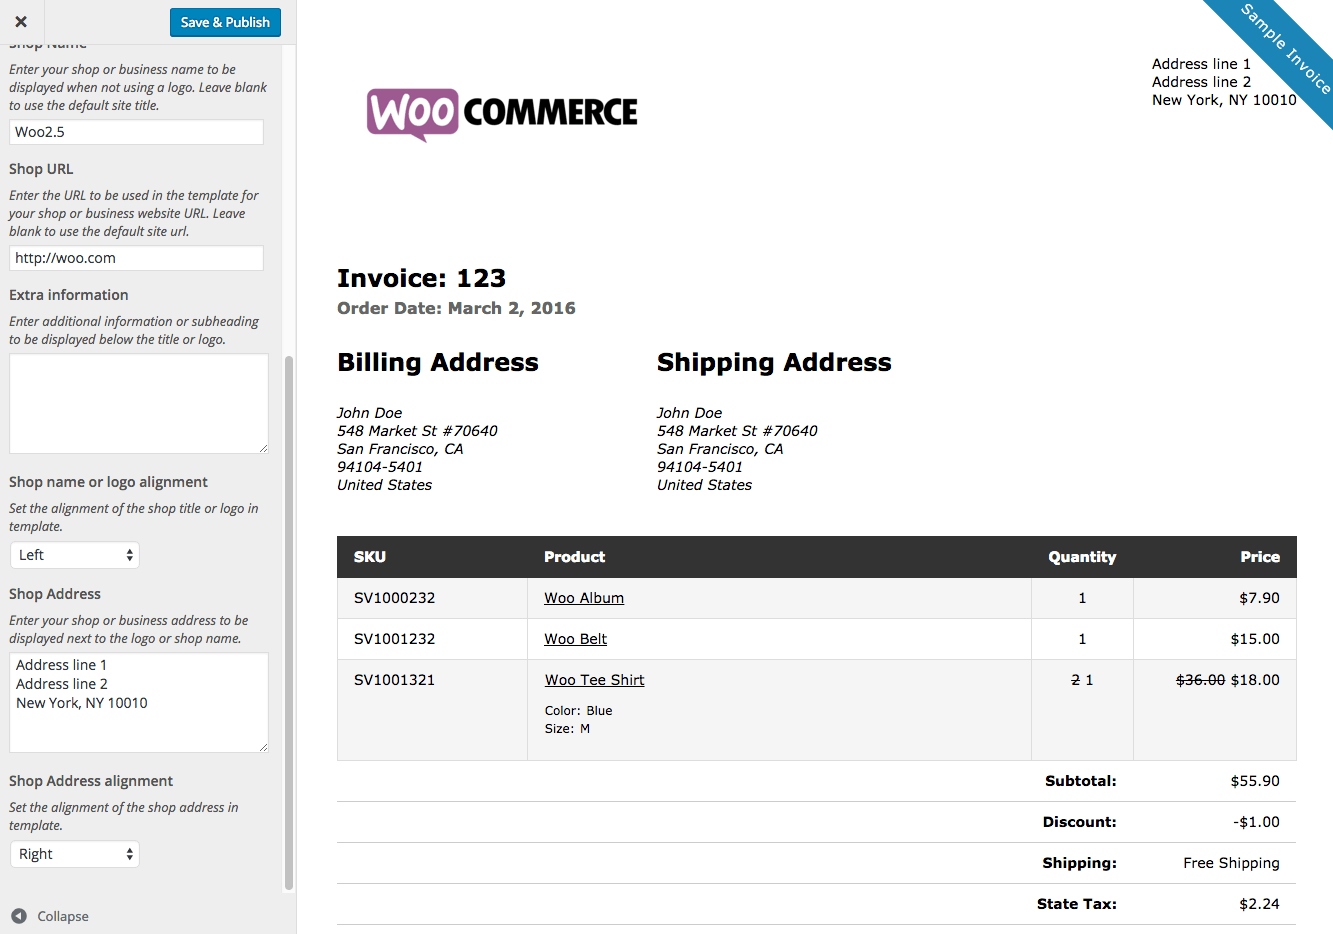 Usdgus  Pretty Print Invoices Amp Packing Lists  Woocommerce With Magnificent Woocommerce Print Invoices  Packing Lists Customizer With Cool Us Commercial Invoice Also Consultancy Invoice Template In Addition Current Invoice And Free Invoicing Service As Well As Custom Invoice Format Additionally Invoice Price Honda Fit From Woocommercecom With Usdgus  Magnificent Print Invoices Amp Packing Lists  Woocommerce With Cool Woocommerce Print Invoices  Packing Lists Customizer And Pretty Us Commercial Invoice Also Consultancy Invoice Template In Addition Current Invoice From Woocommercecom